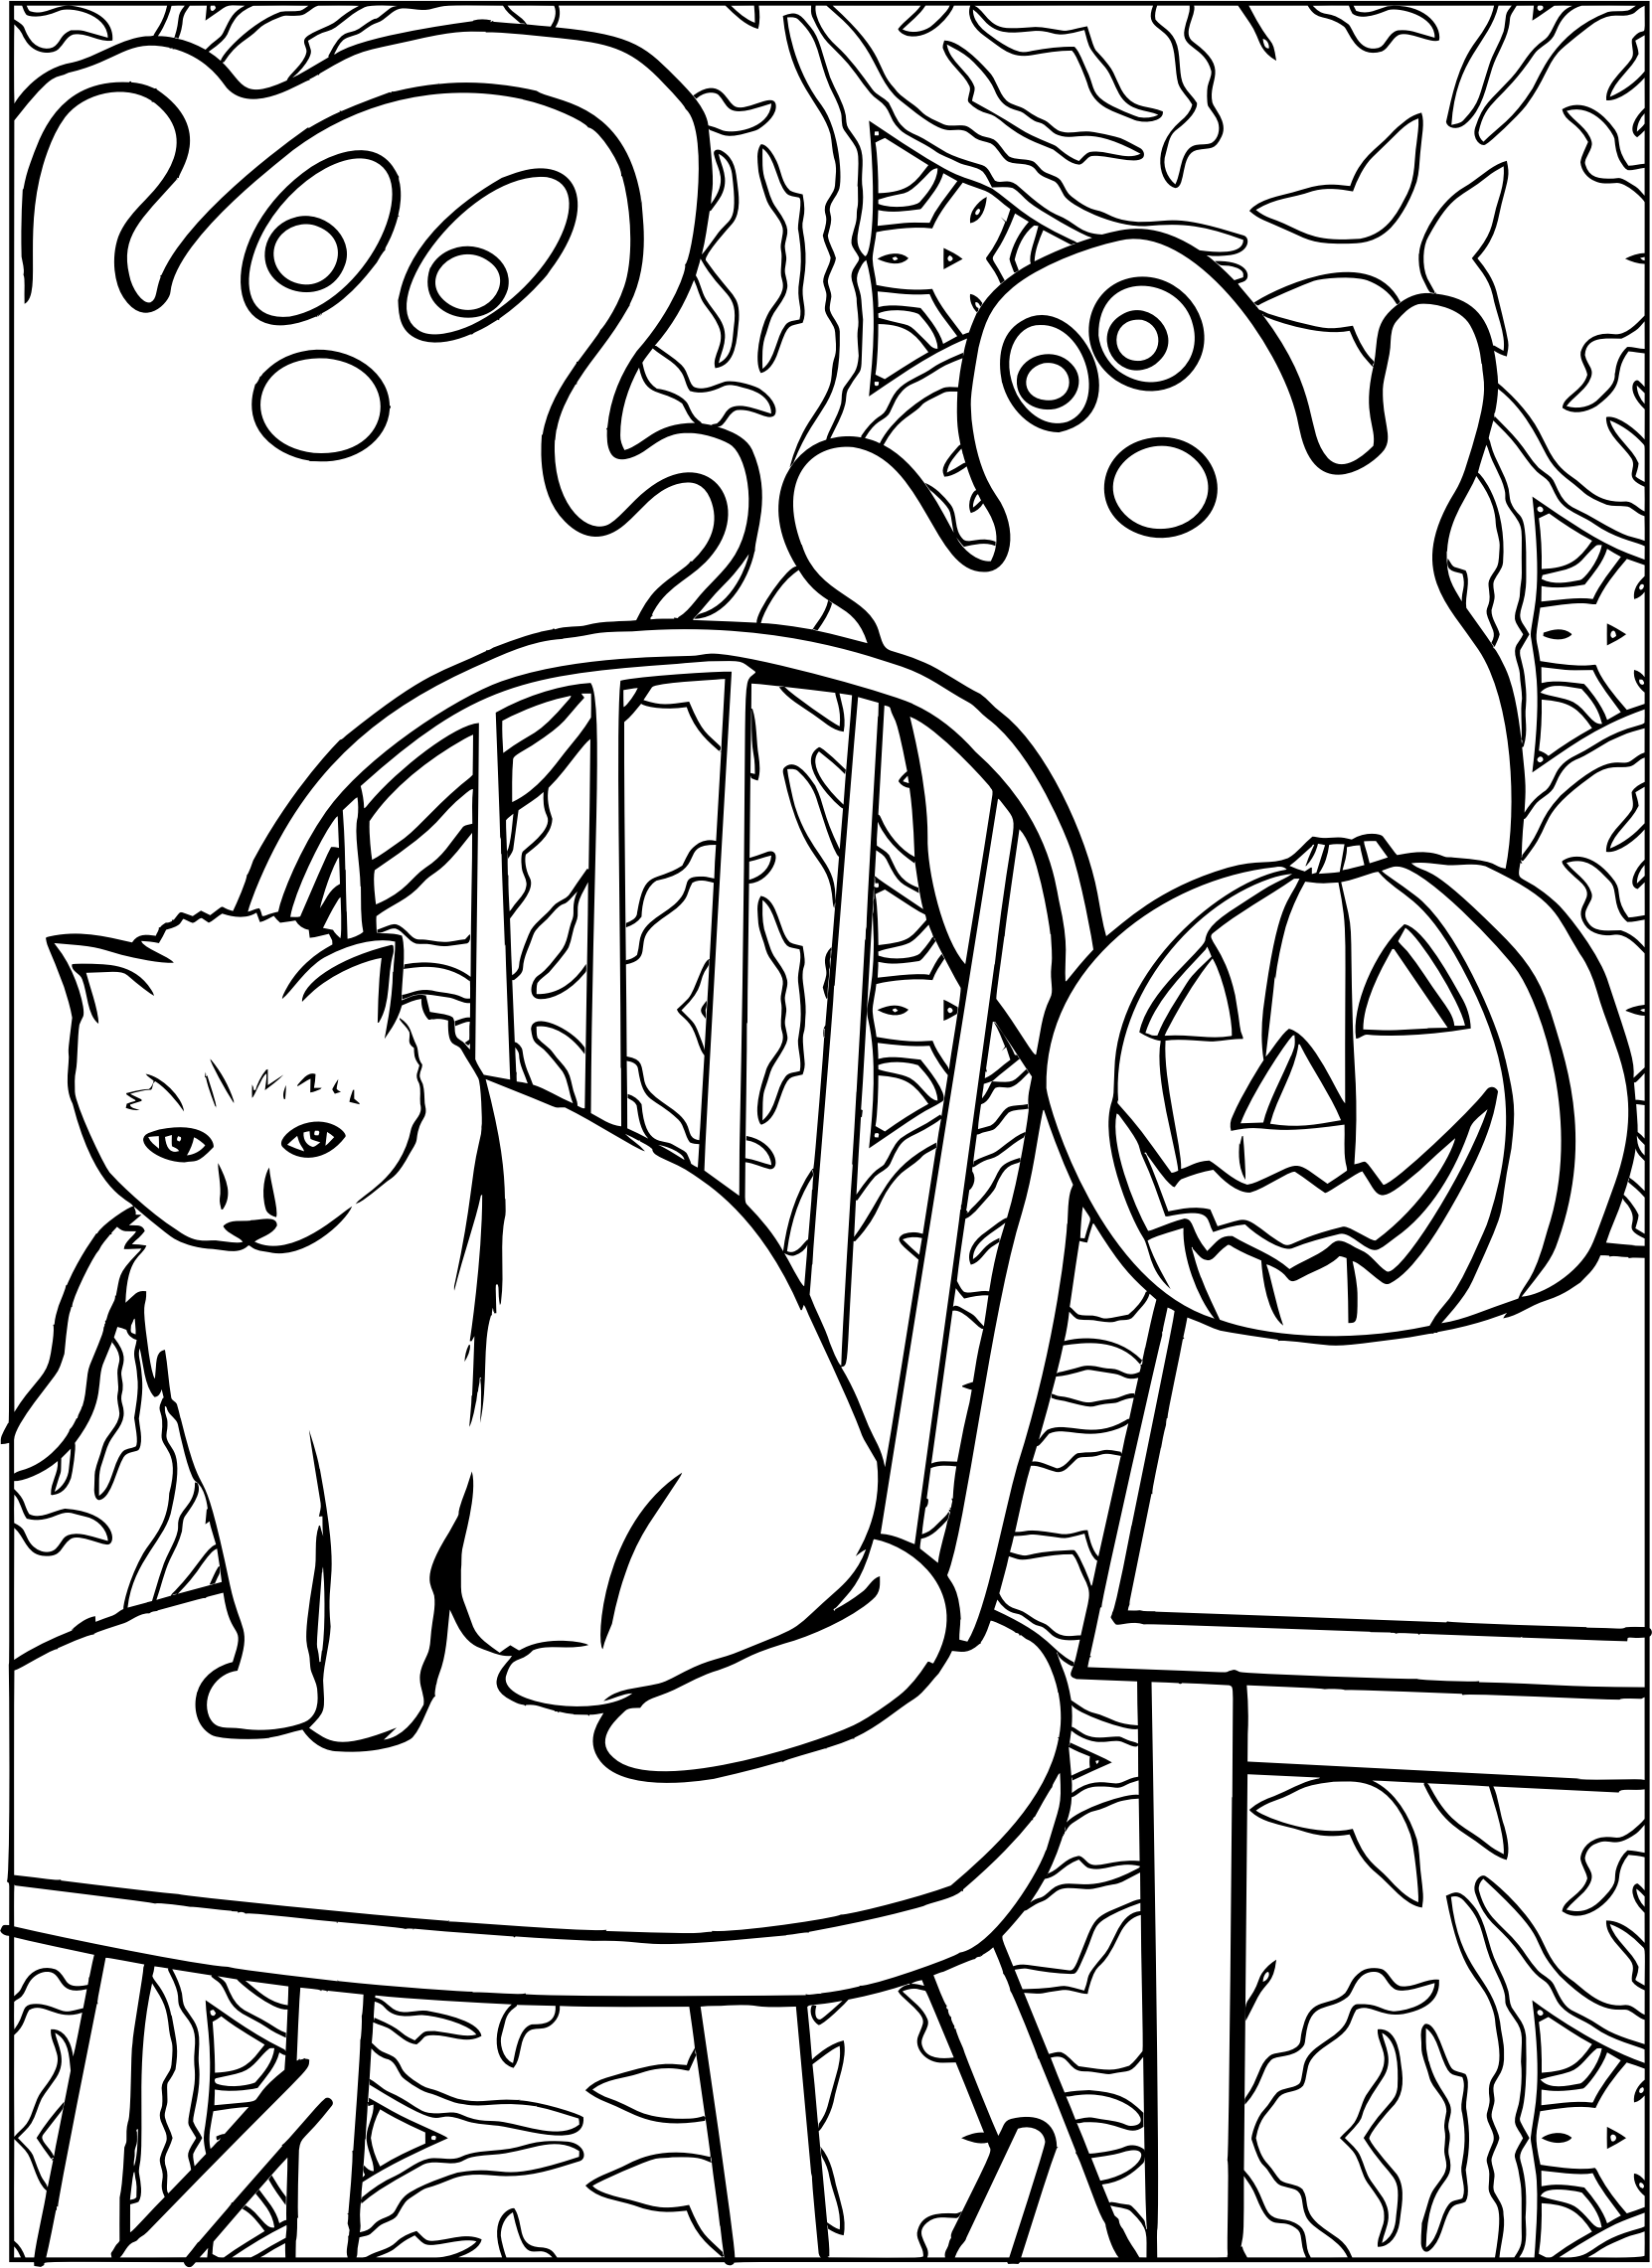 Halloween Cat Line Art With Ghost And Jack O Lanterns